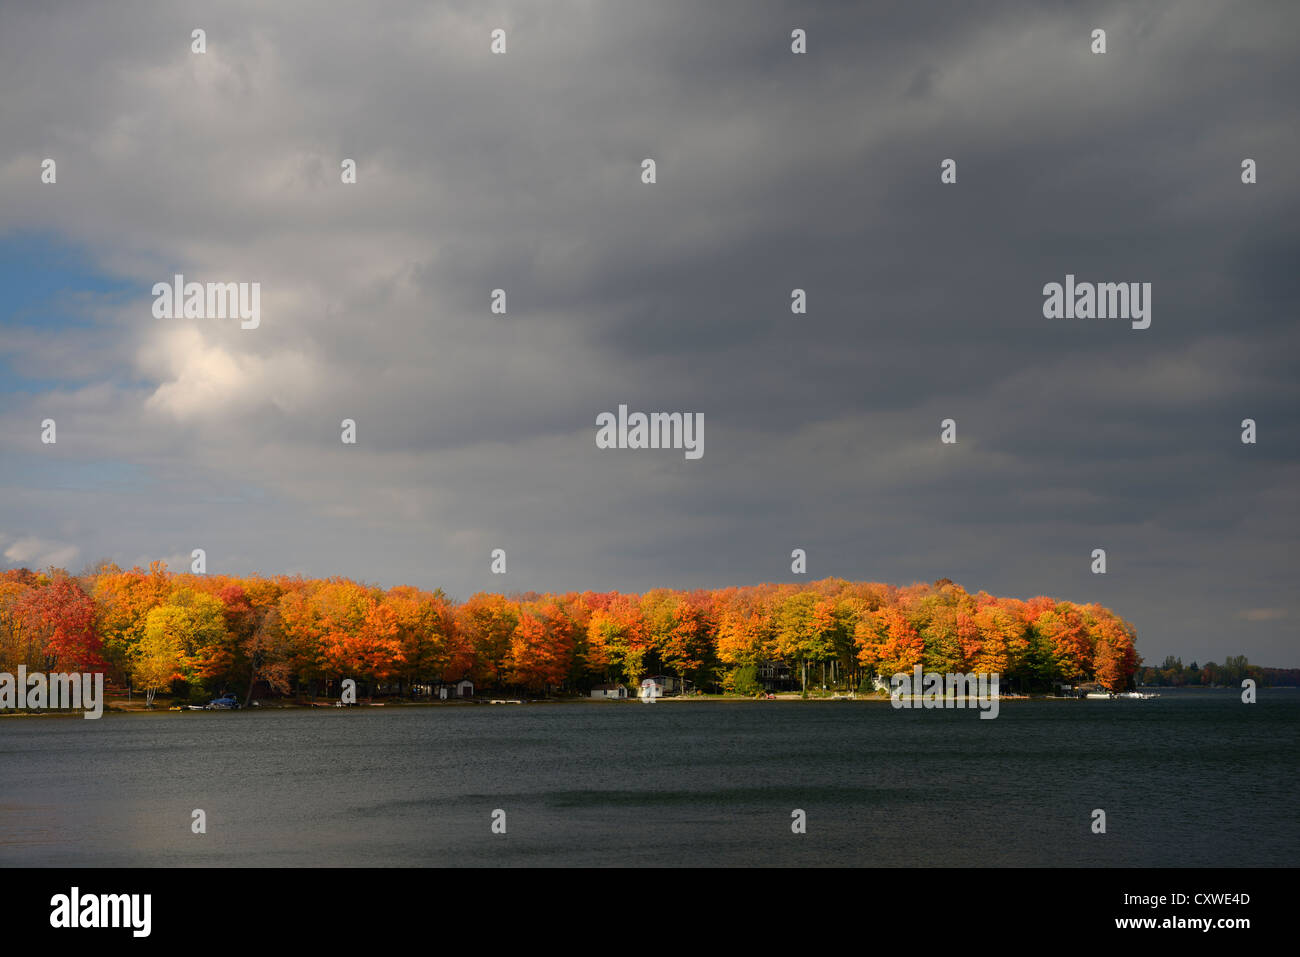 Cottages on Lake Eugenia Ontario Canada with bright red sidelit maple trees and storm clouds - Stock Image